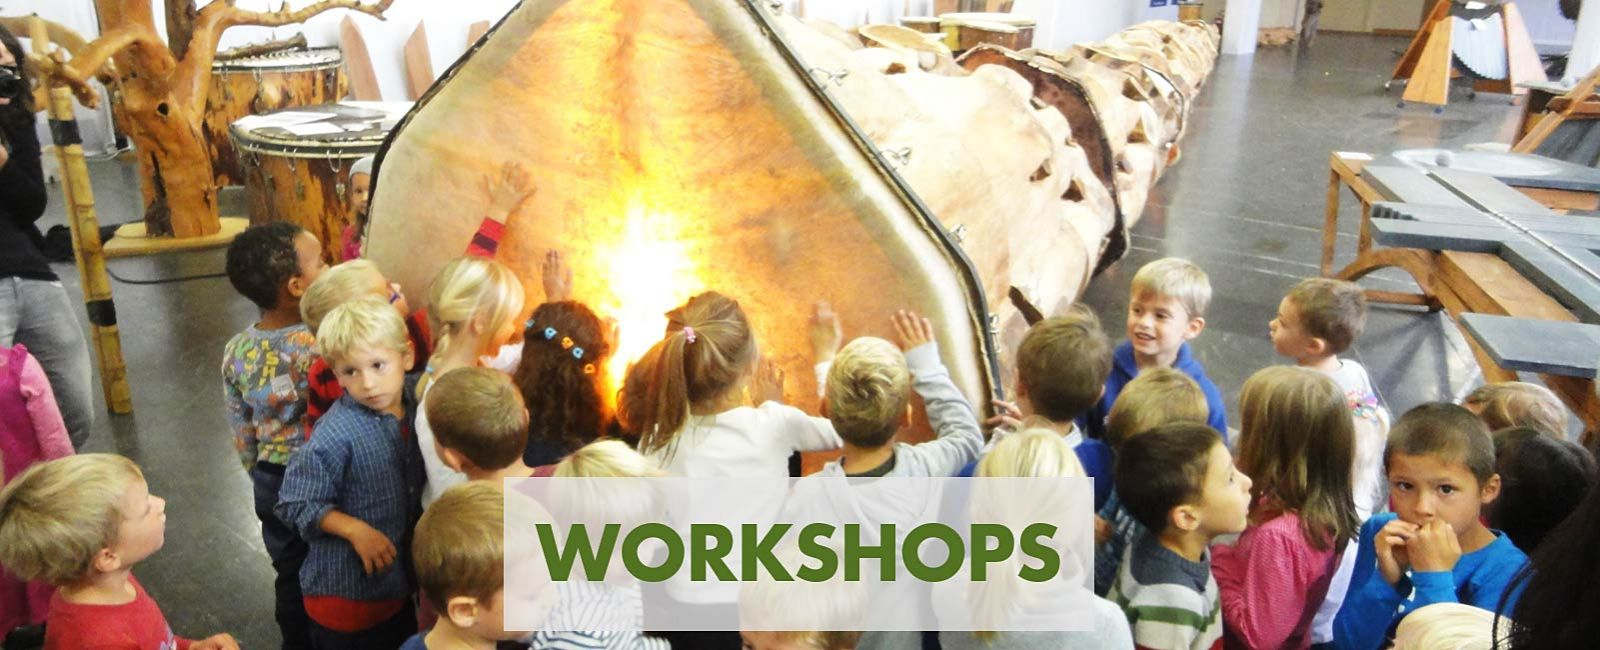 Treetalks Workshops